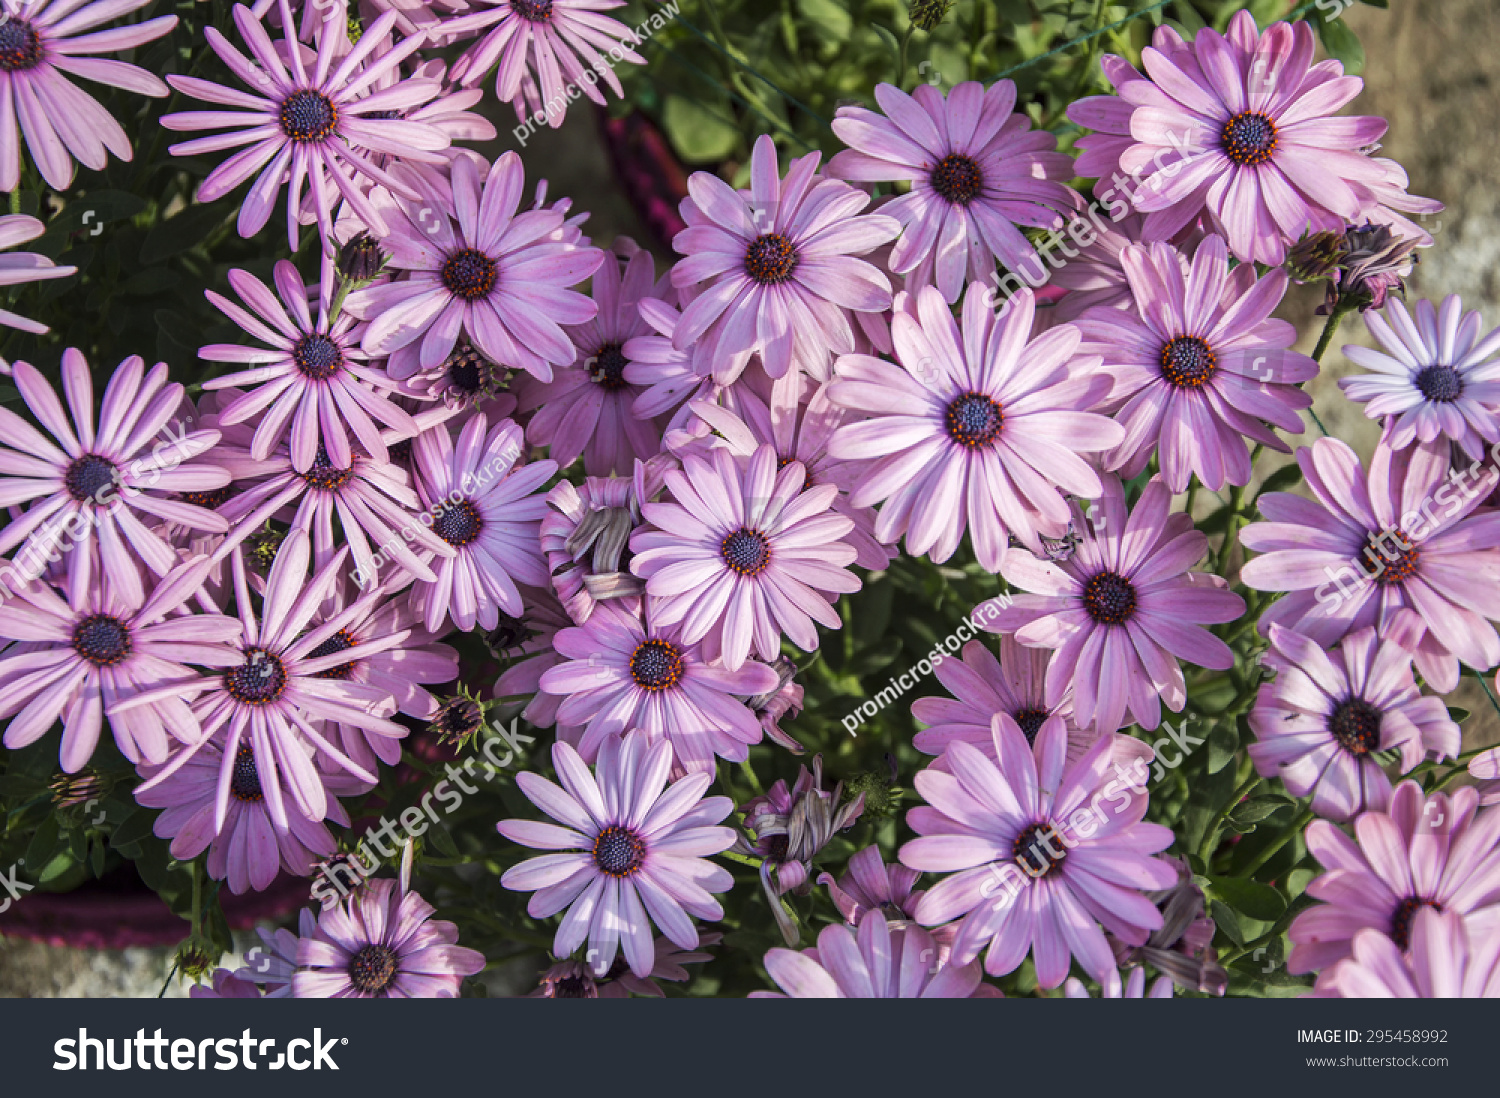 Purple daisy flowers on wild grassland stock photo edit now purple daisy flowers on the wild and grassland izmirmasajfo